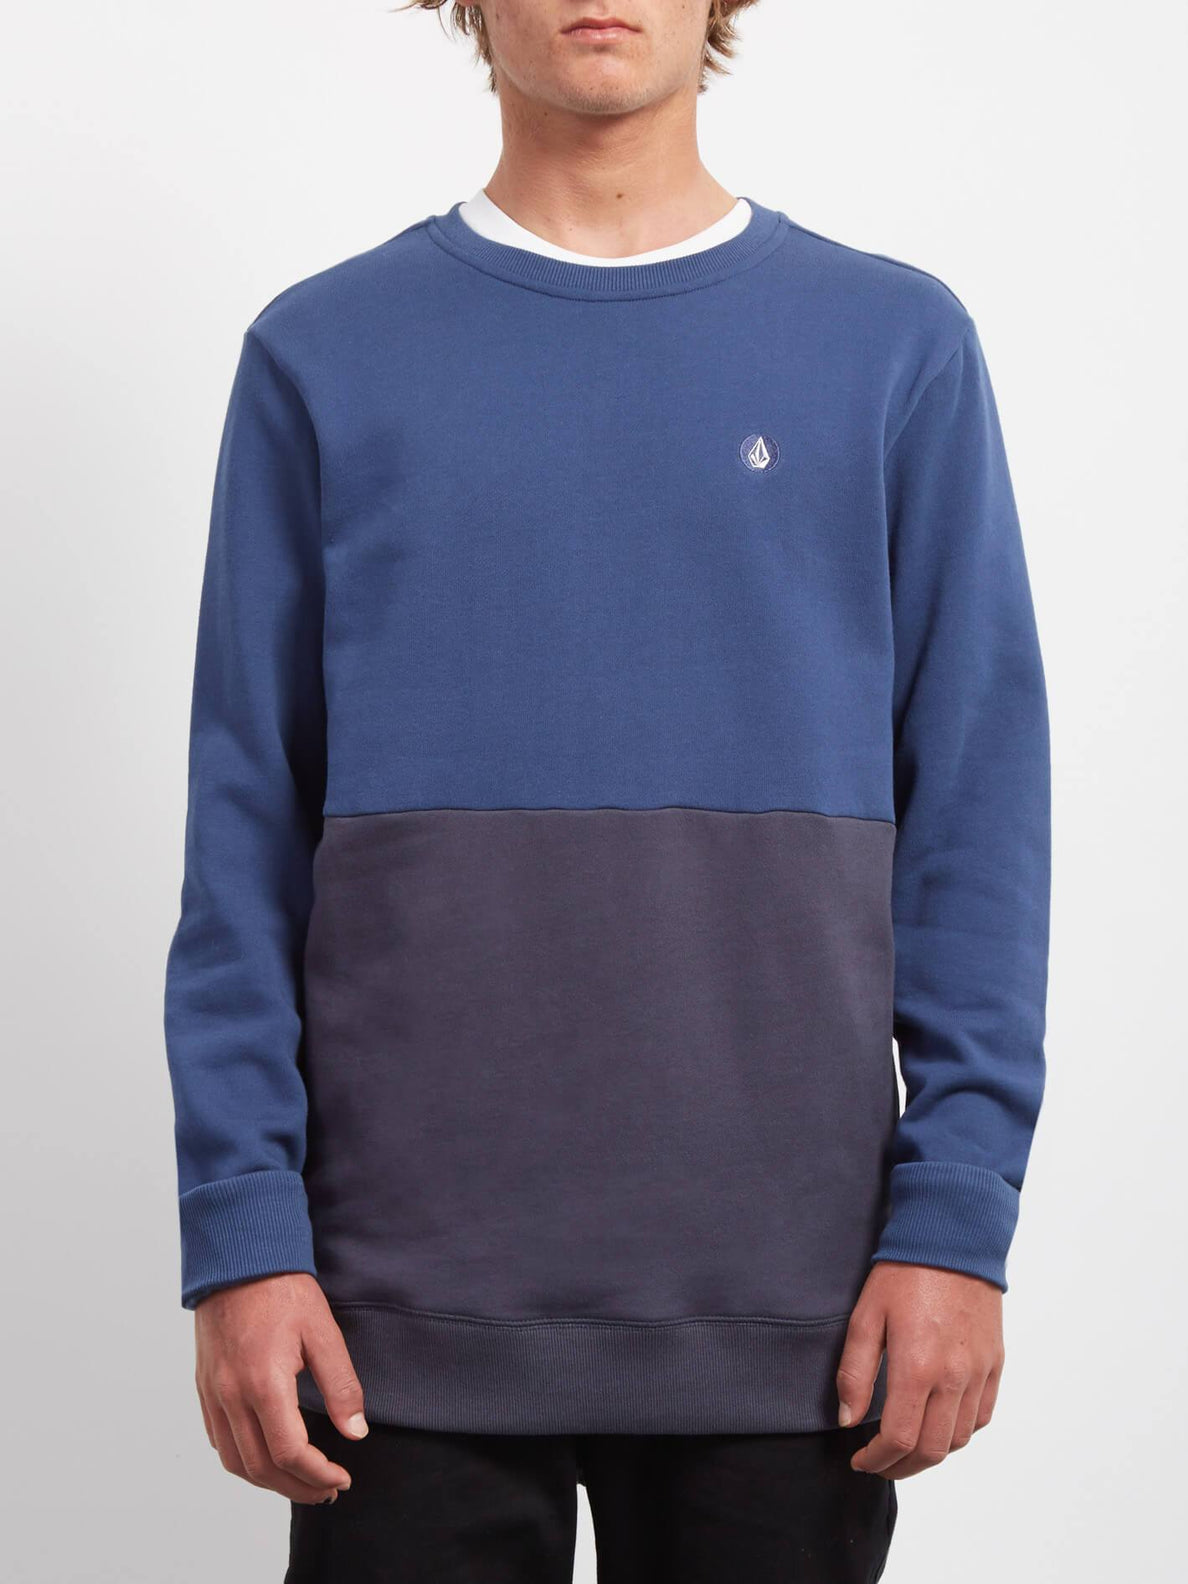 Sudadera Sngl Stn Div  - Matured Blue